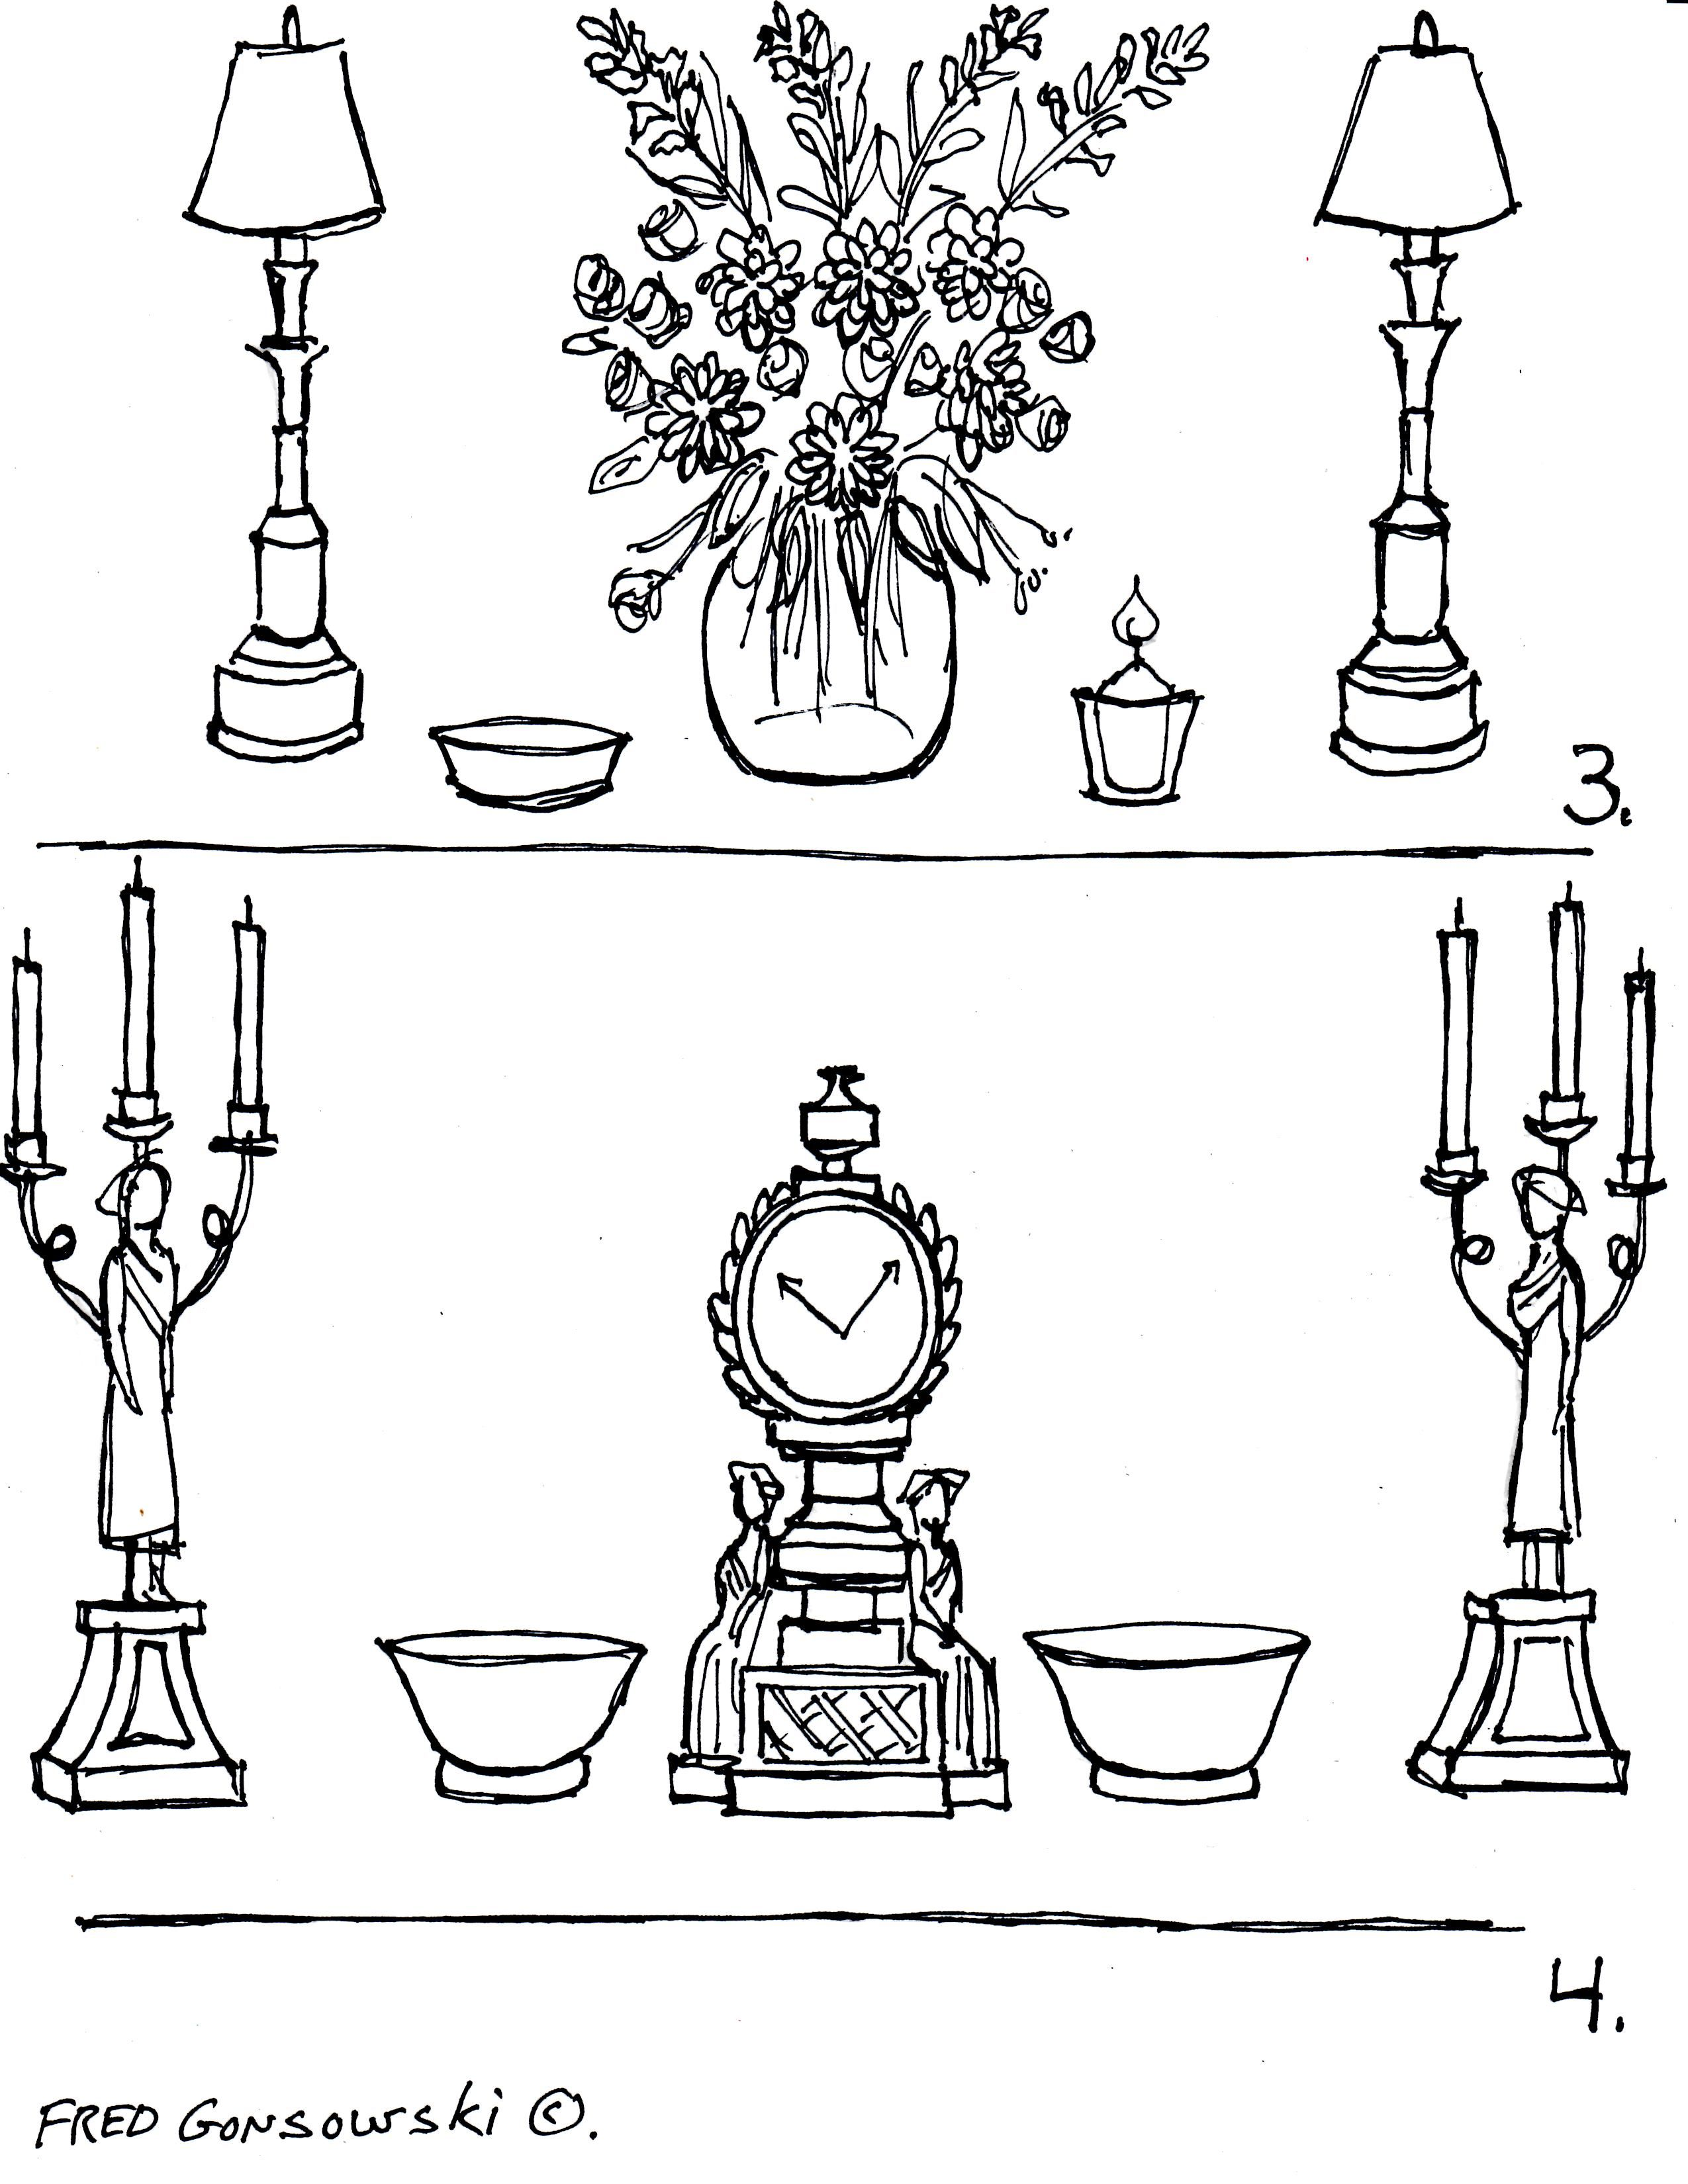 The Arranging Of Knickknacks Decorative Accessories On A